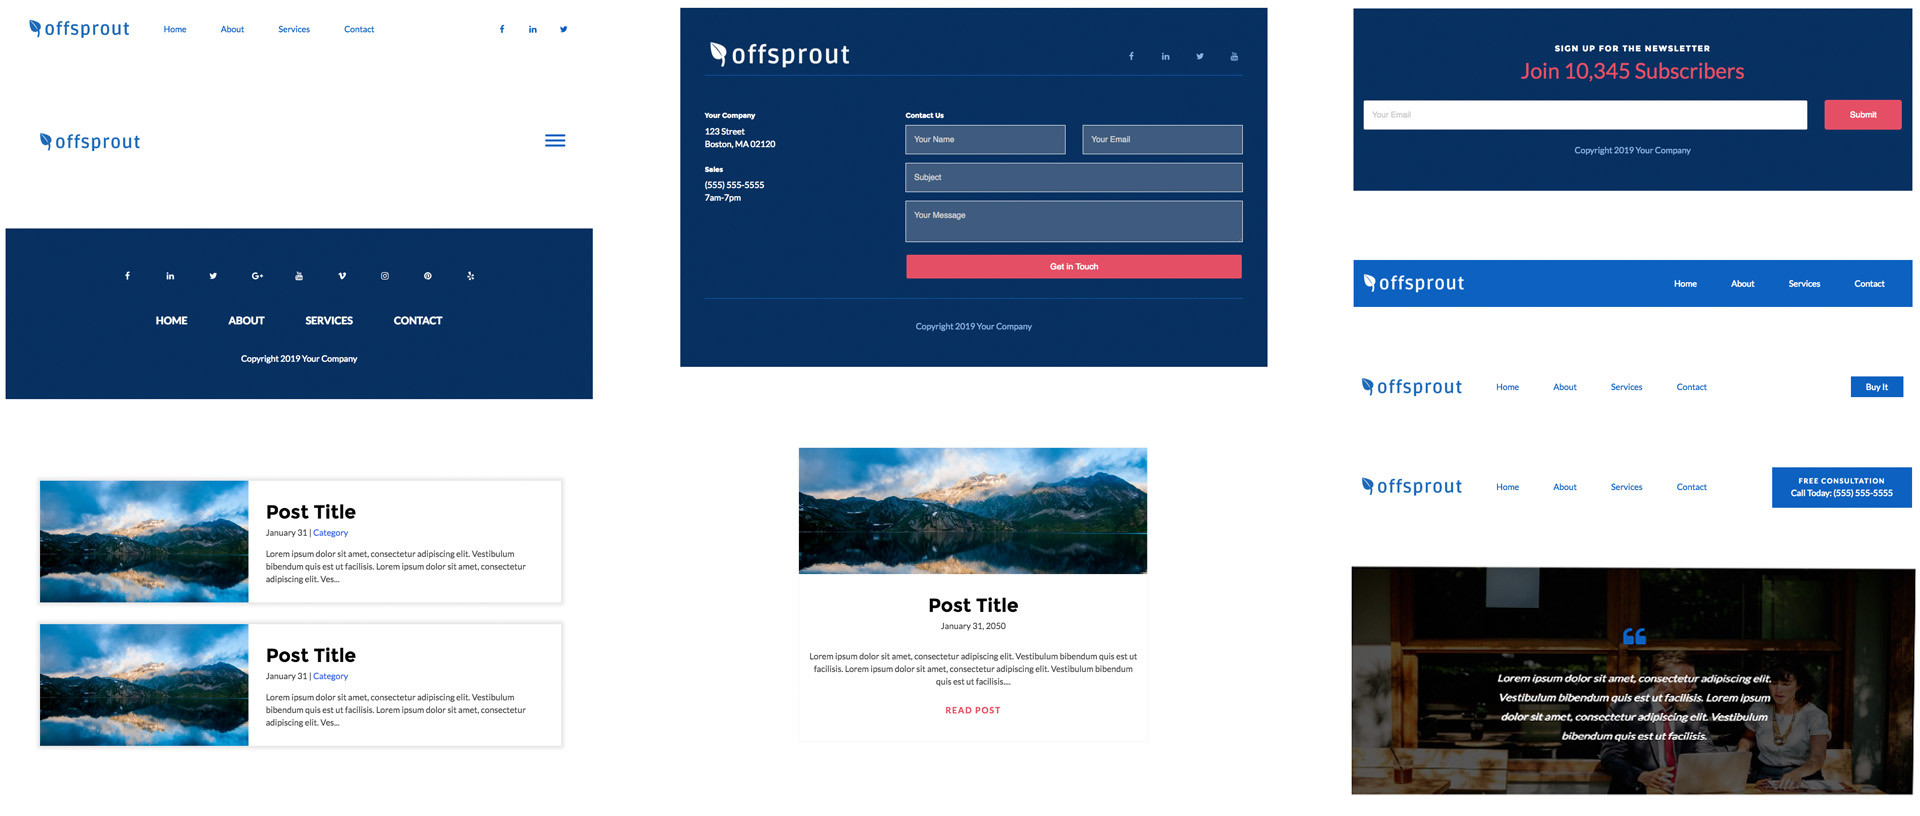 Offsprout's WordPress Theme Builder Templates